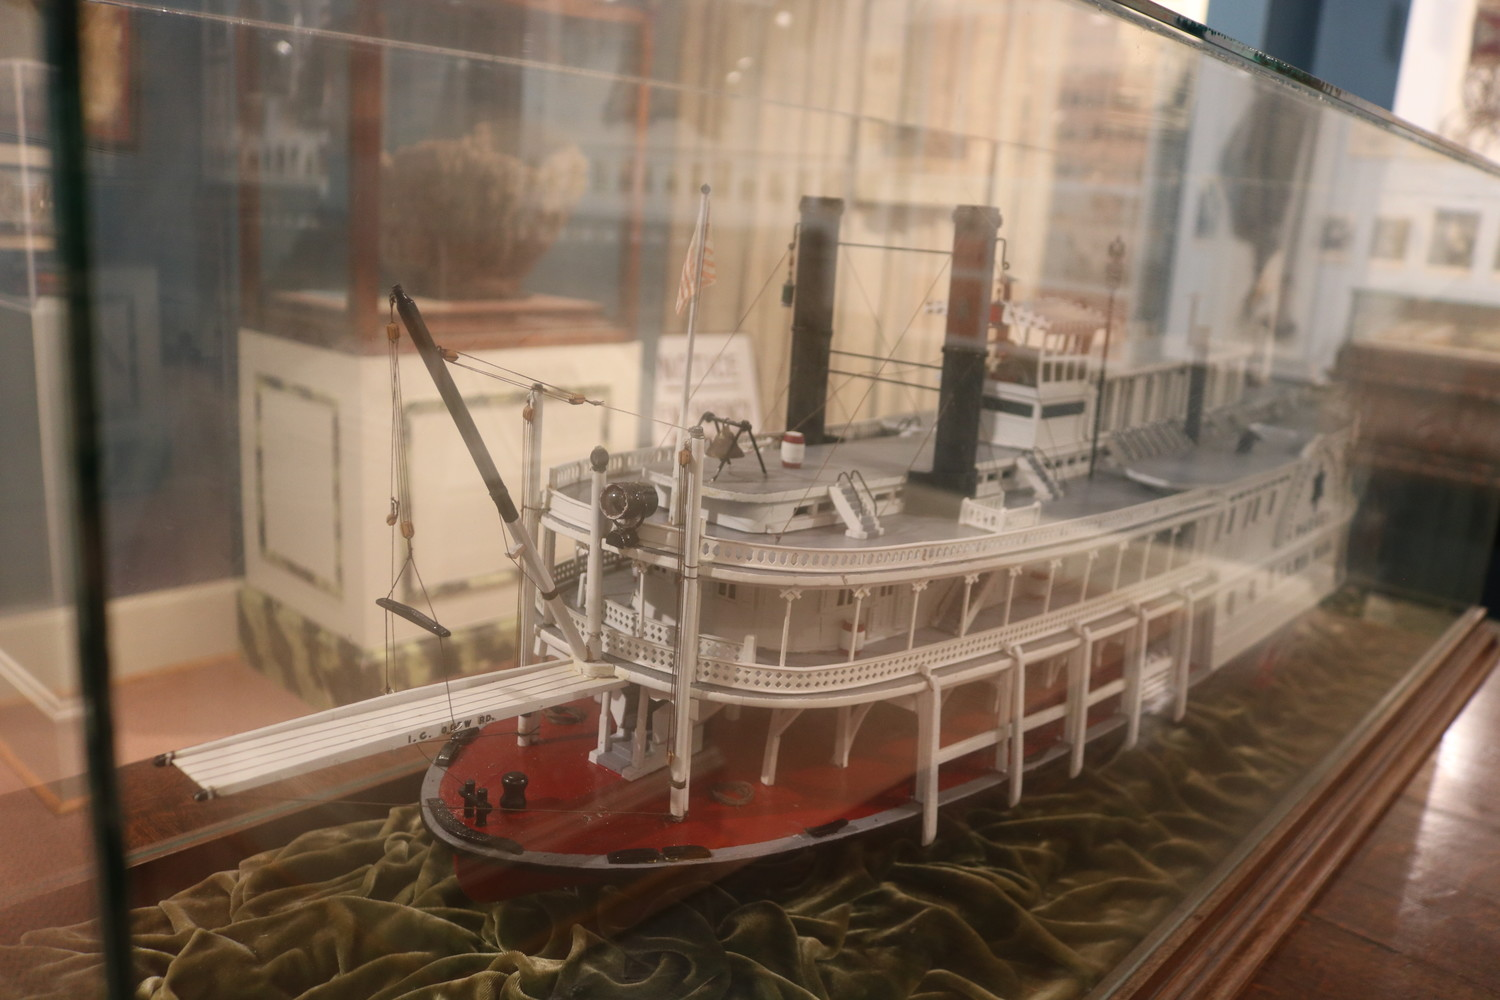 Displayed is a model of the River Packet boat, which was originally built for Pittsburgh, Brownsville and Geneva Packet Co. This scale model was made in the 1930s by Raymond Urban and Carl Koch.